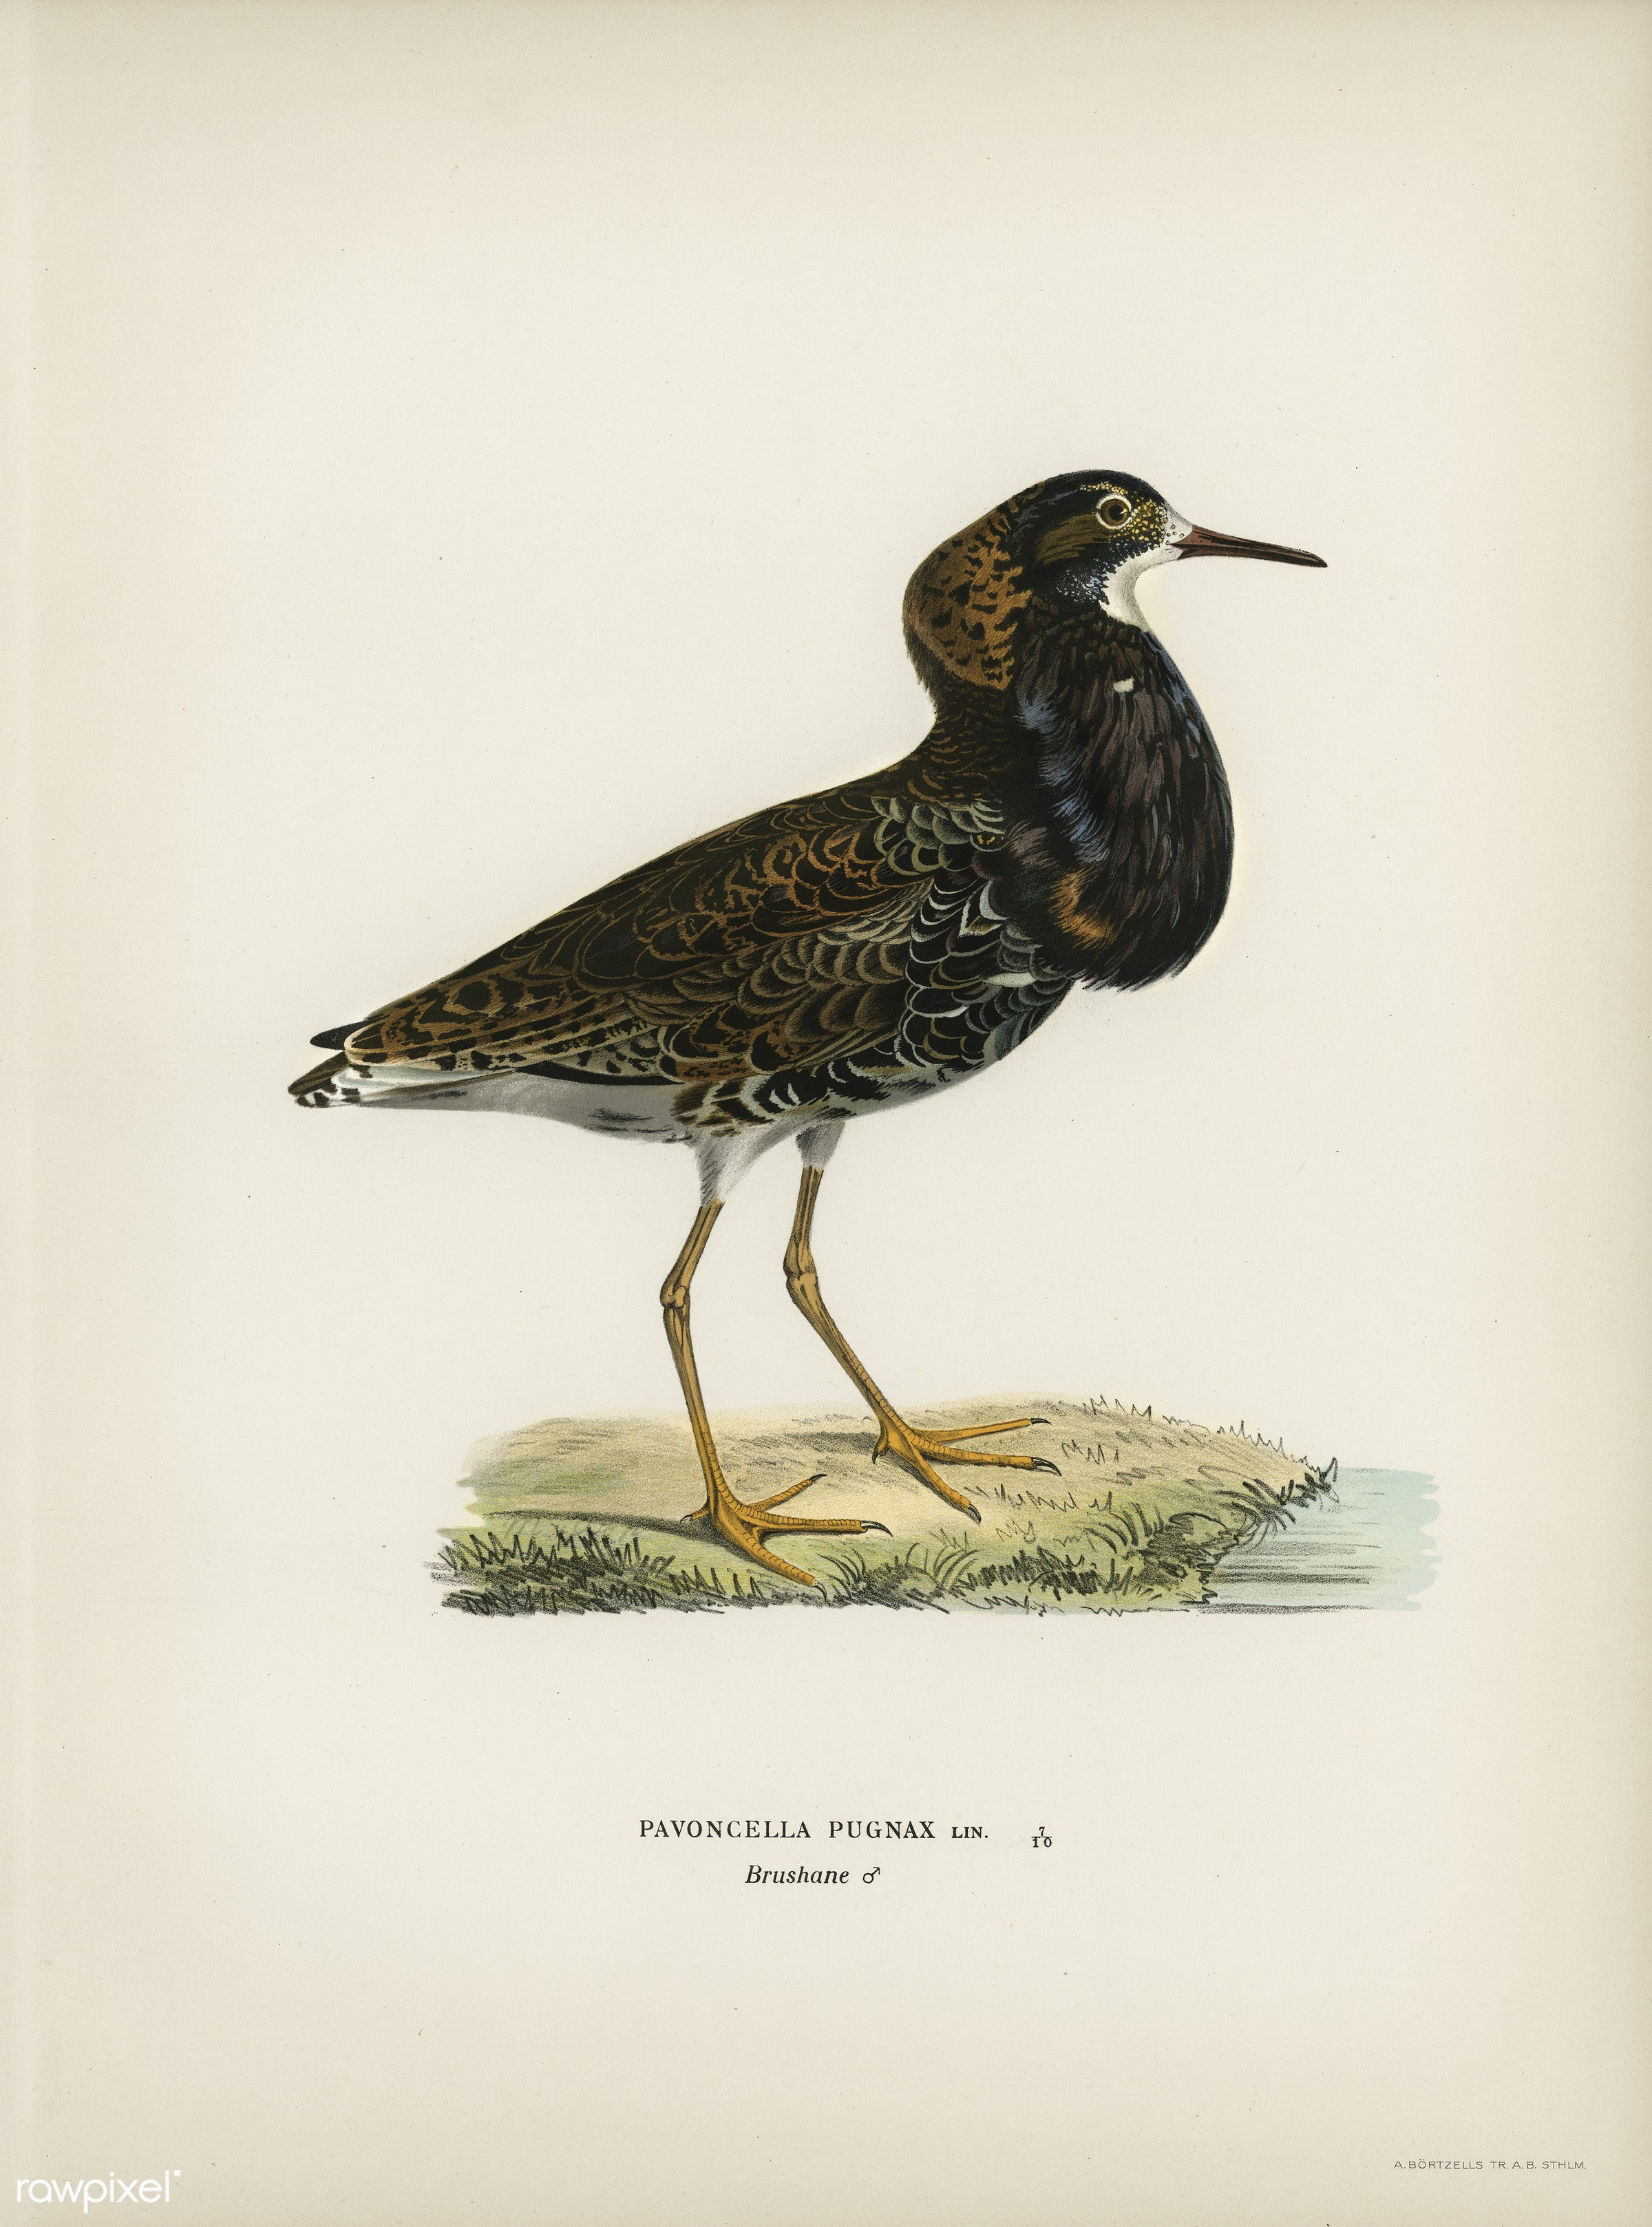 Ruff (Pavoncella pugnaxr) illustrated by the von Wright brothers. Digitally enhanced from our own 1929 folio version of...